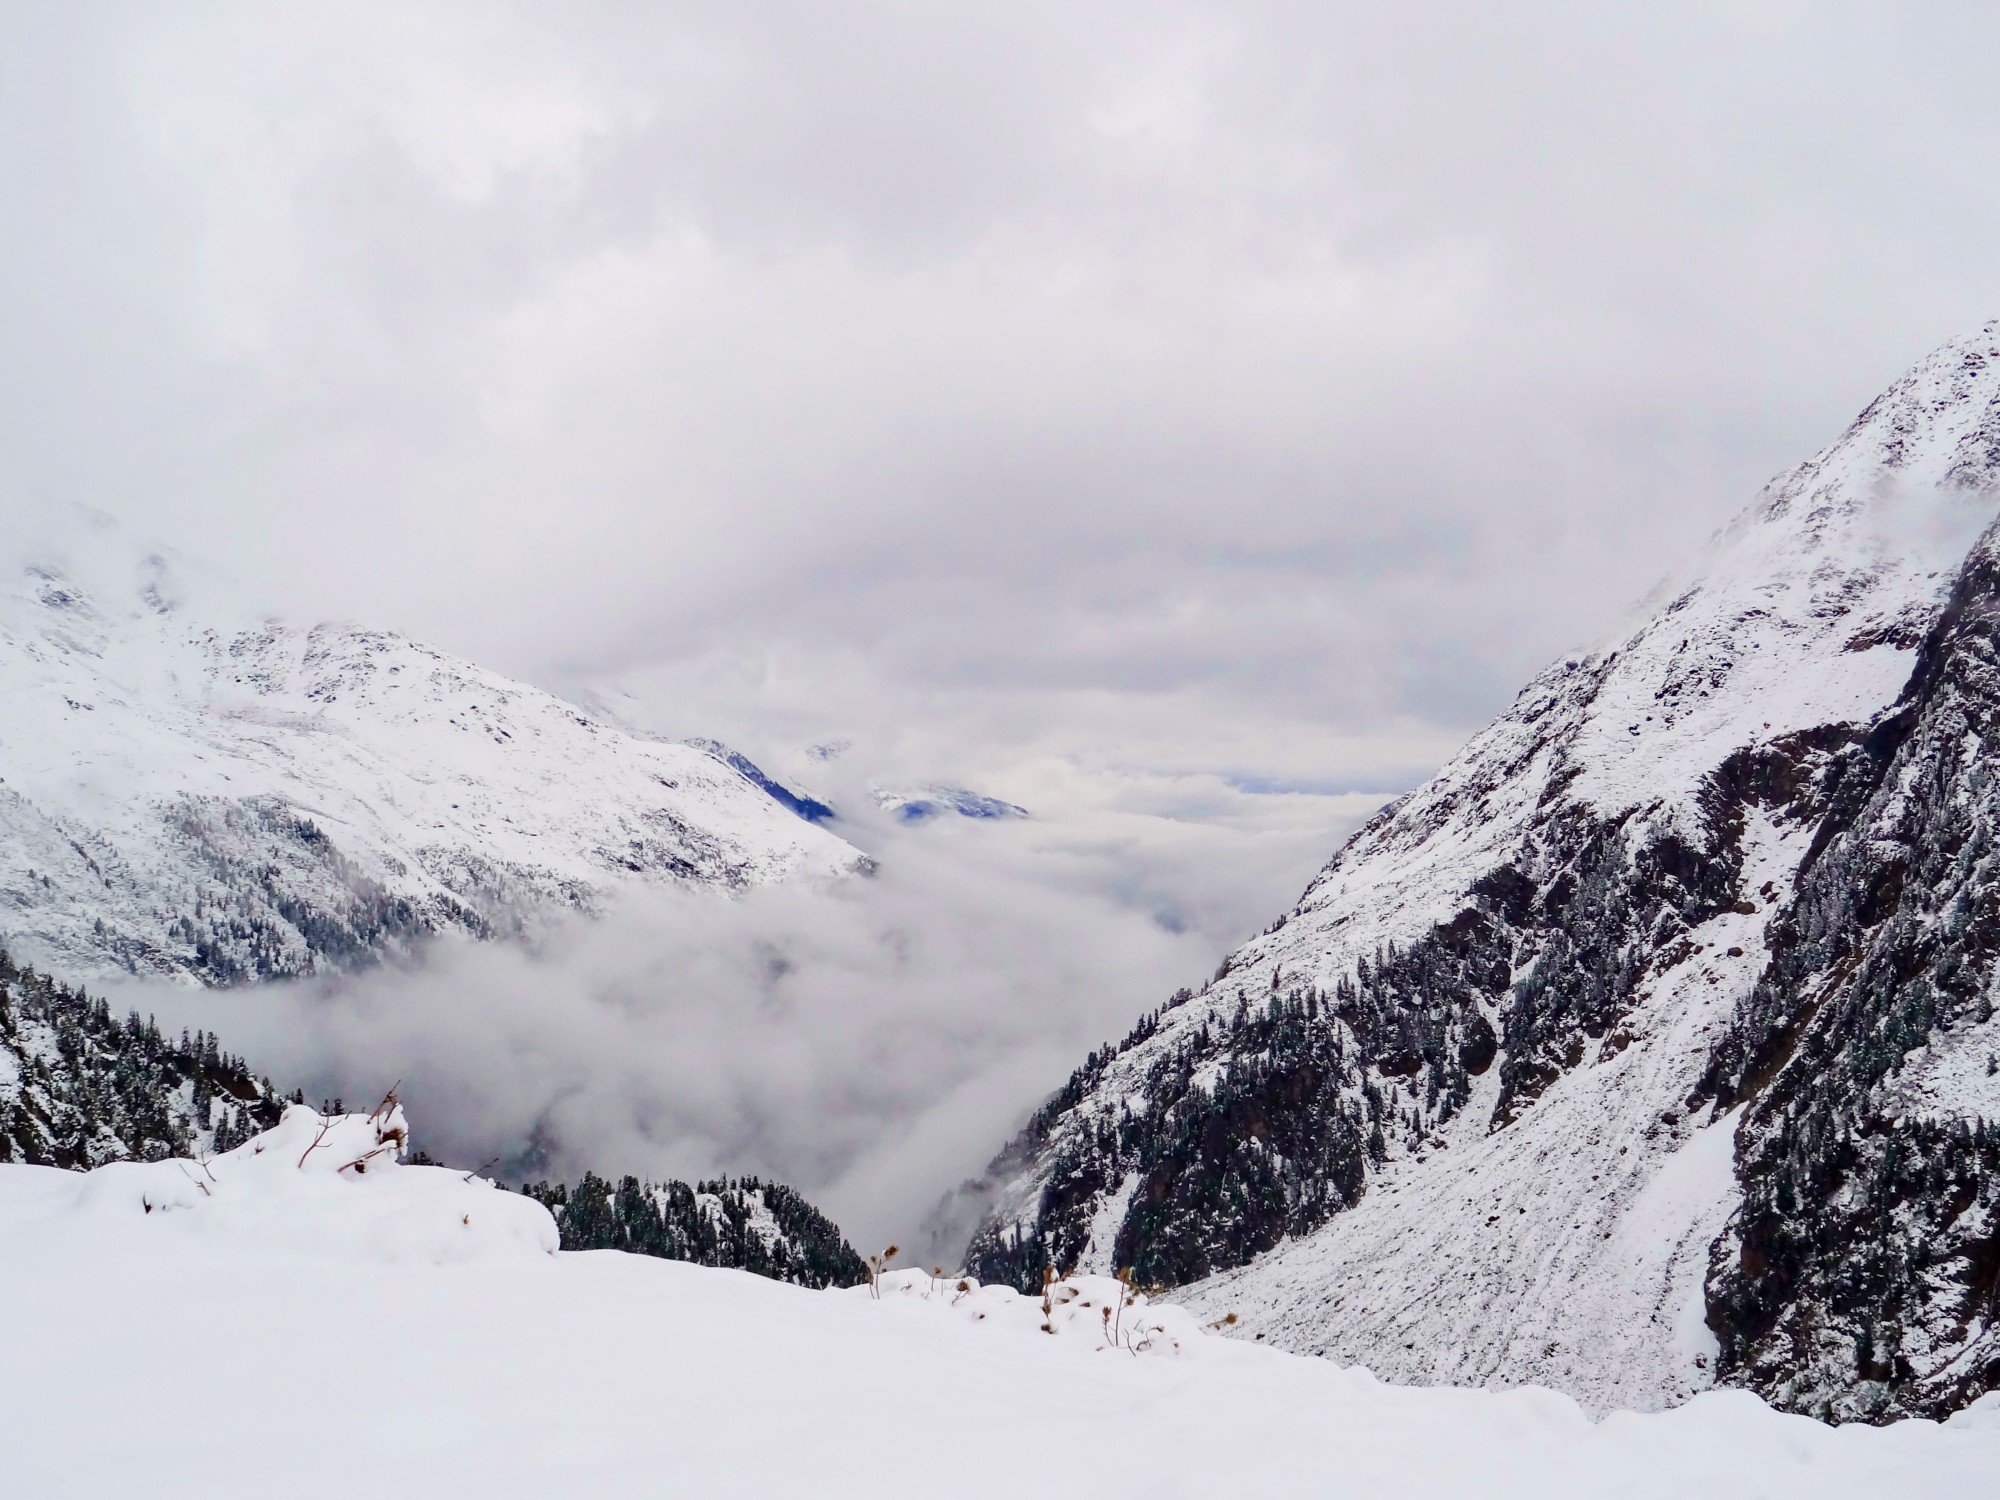 Valley in snow